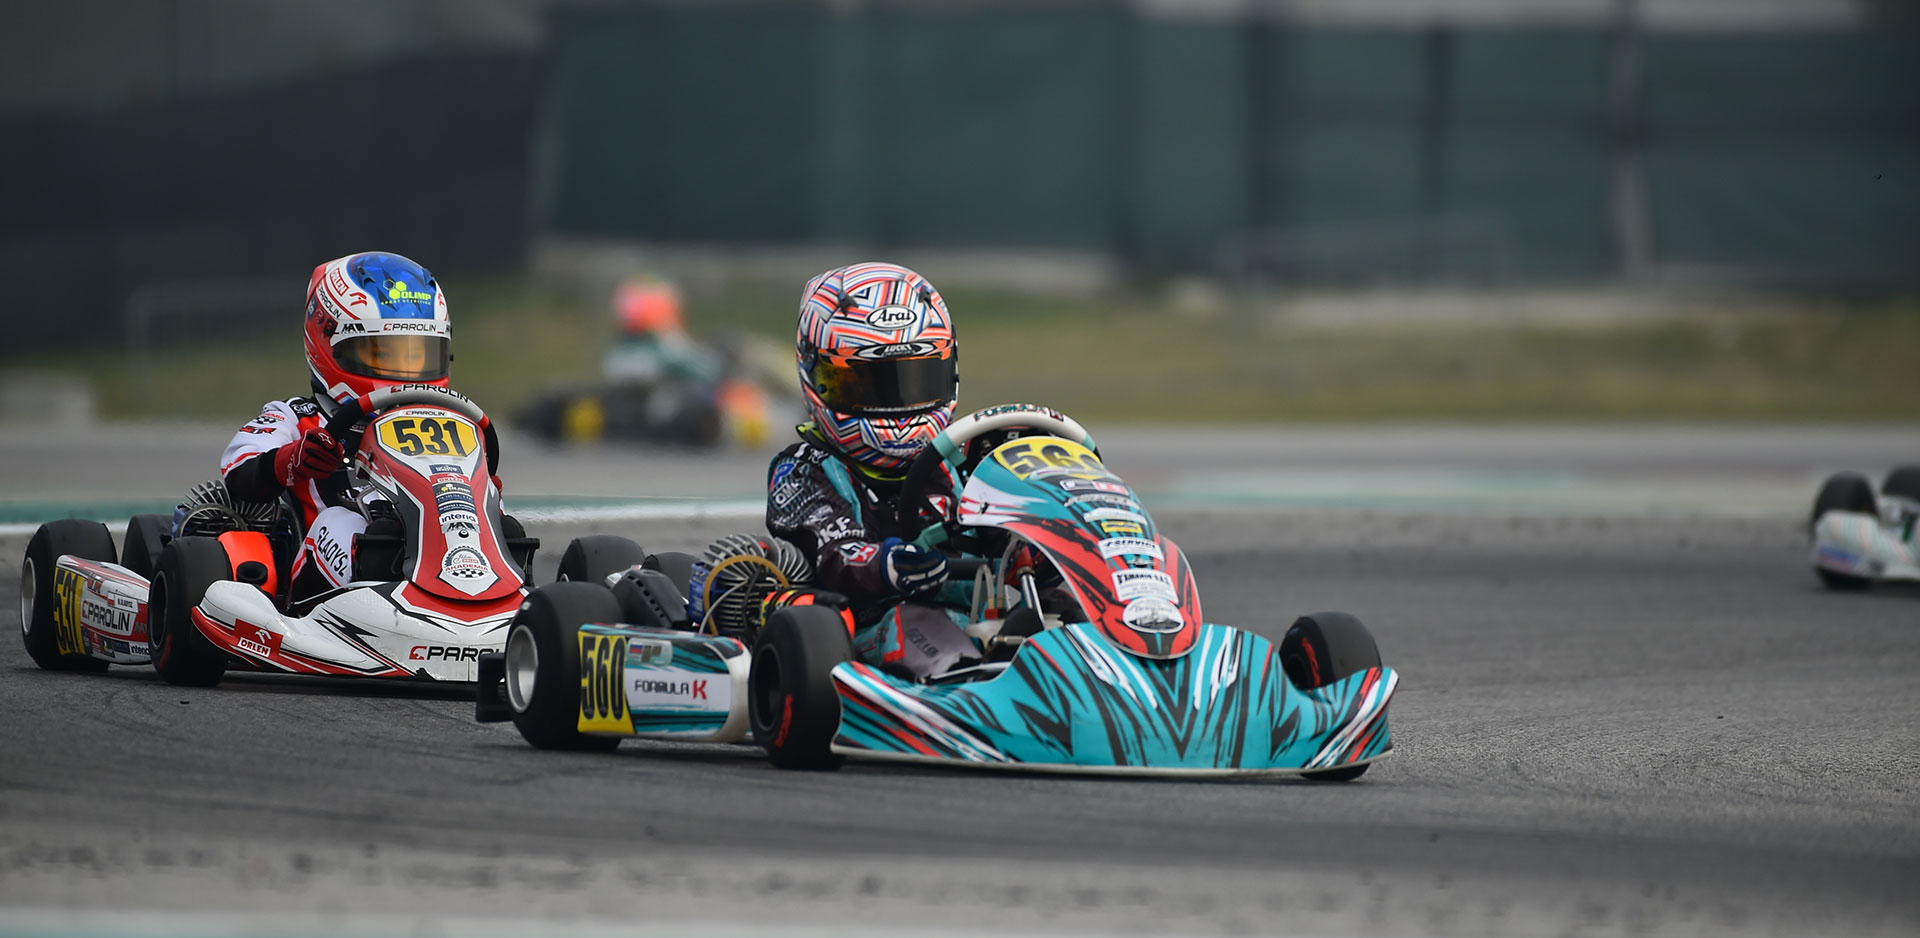 Skulanov and Formula K, winners of round 1 of the WSK Master Series